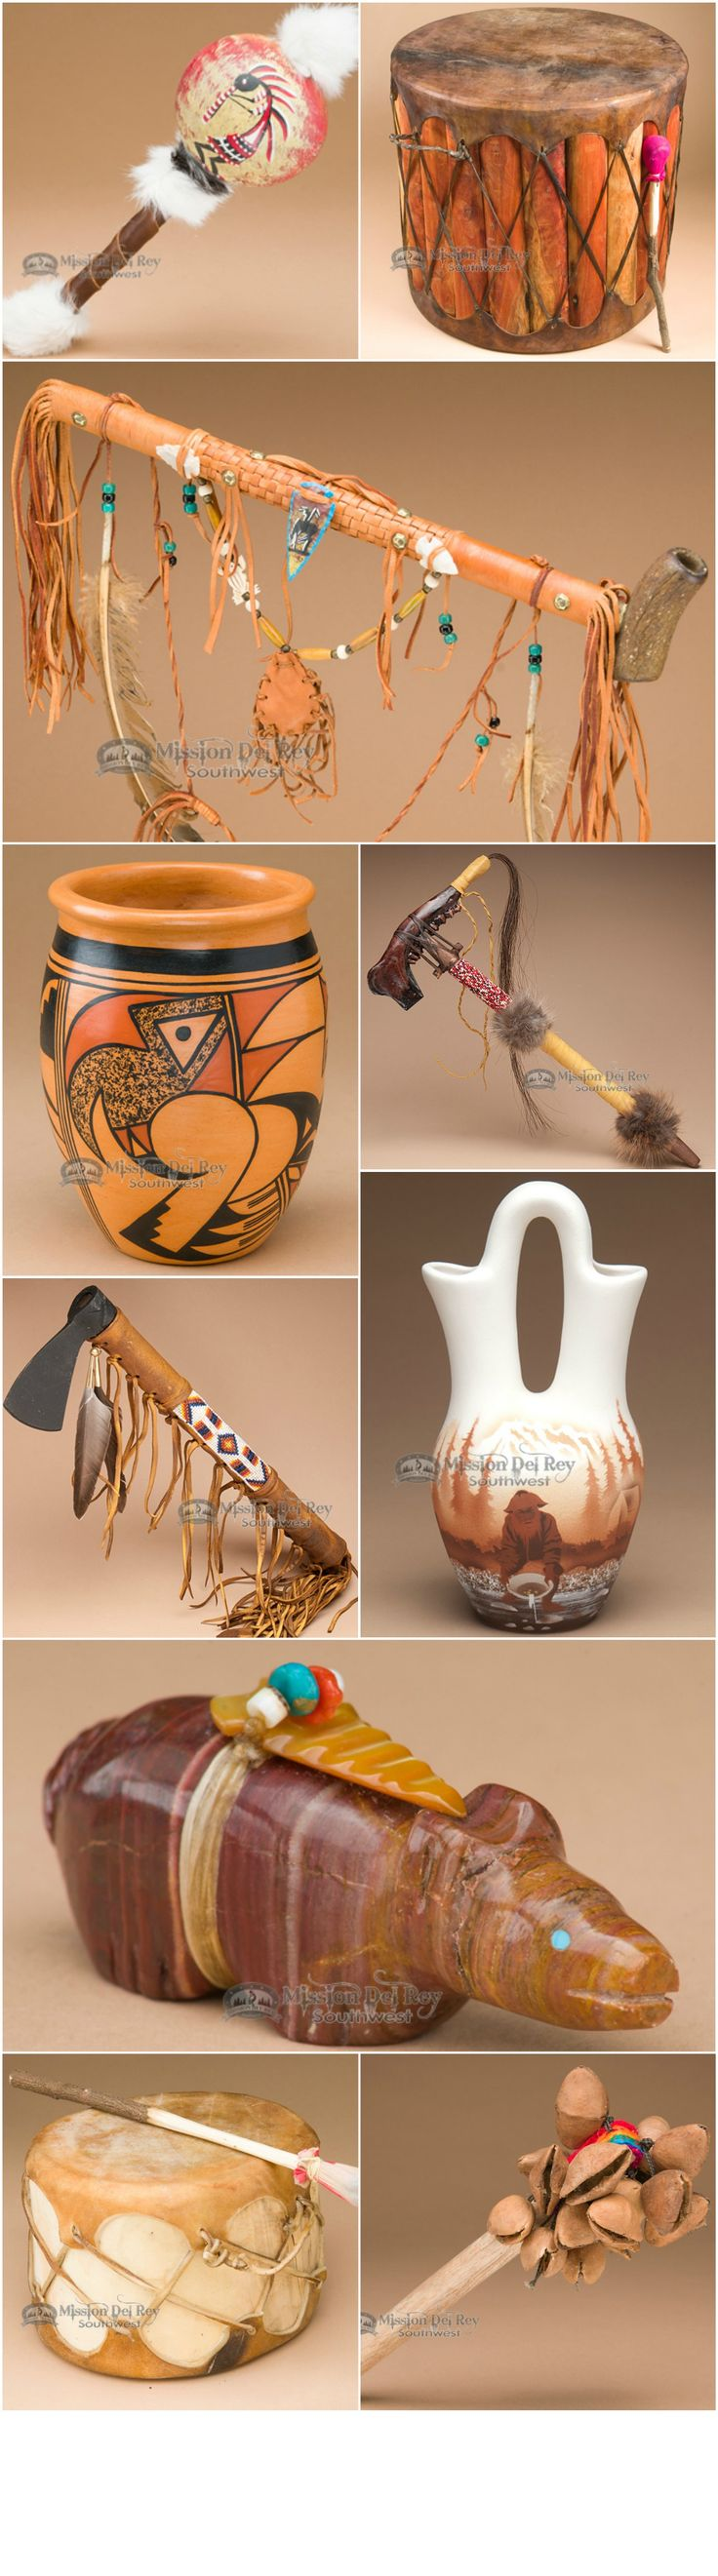 Native American pottery, drums, rattles, peace pipes, tomahawks and more for southwest decorating.